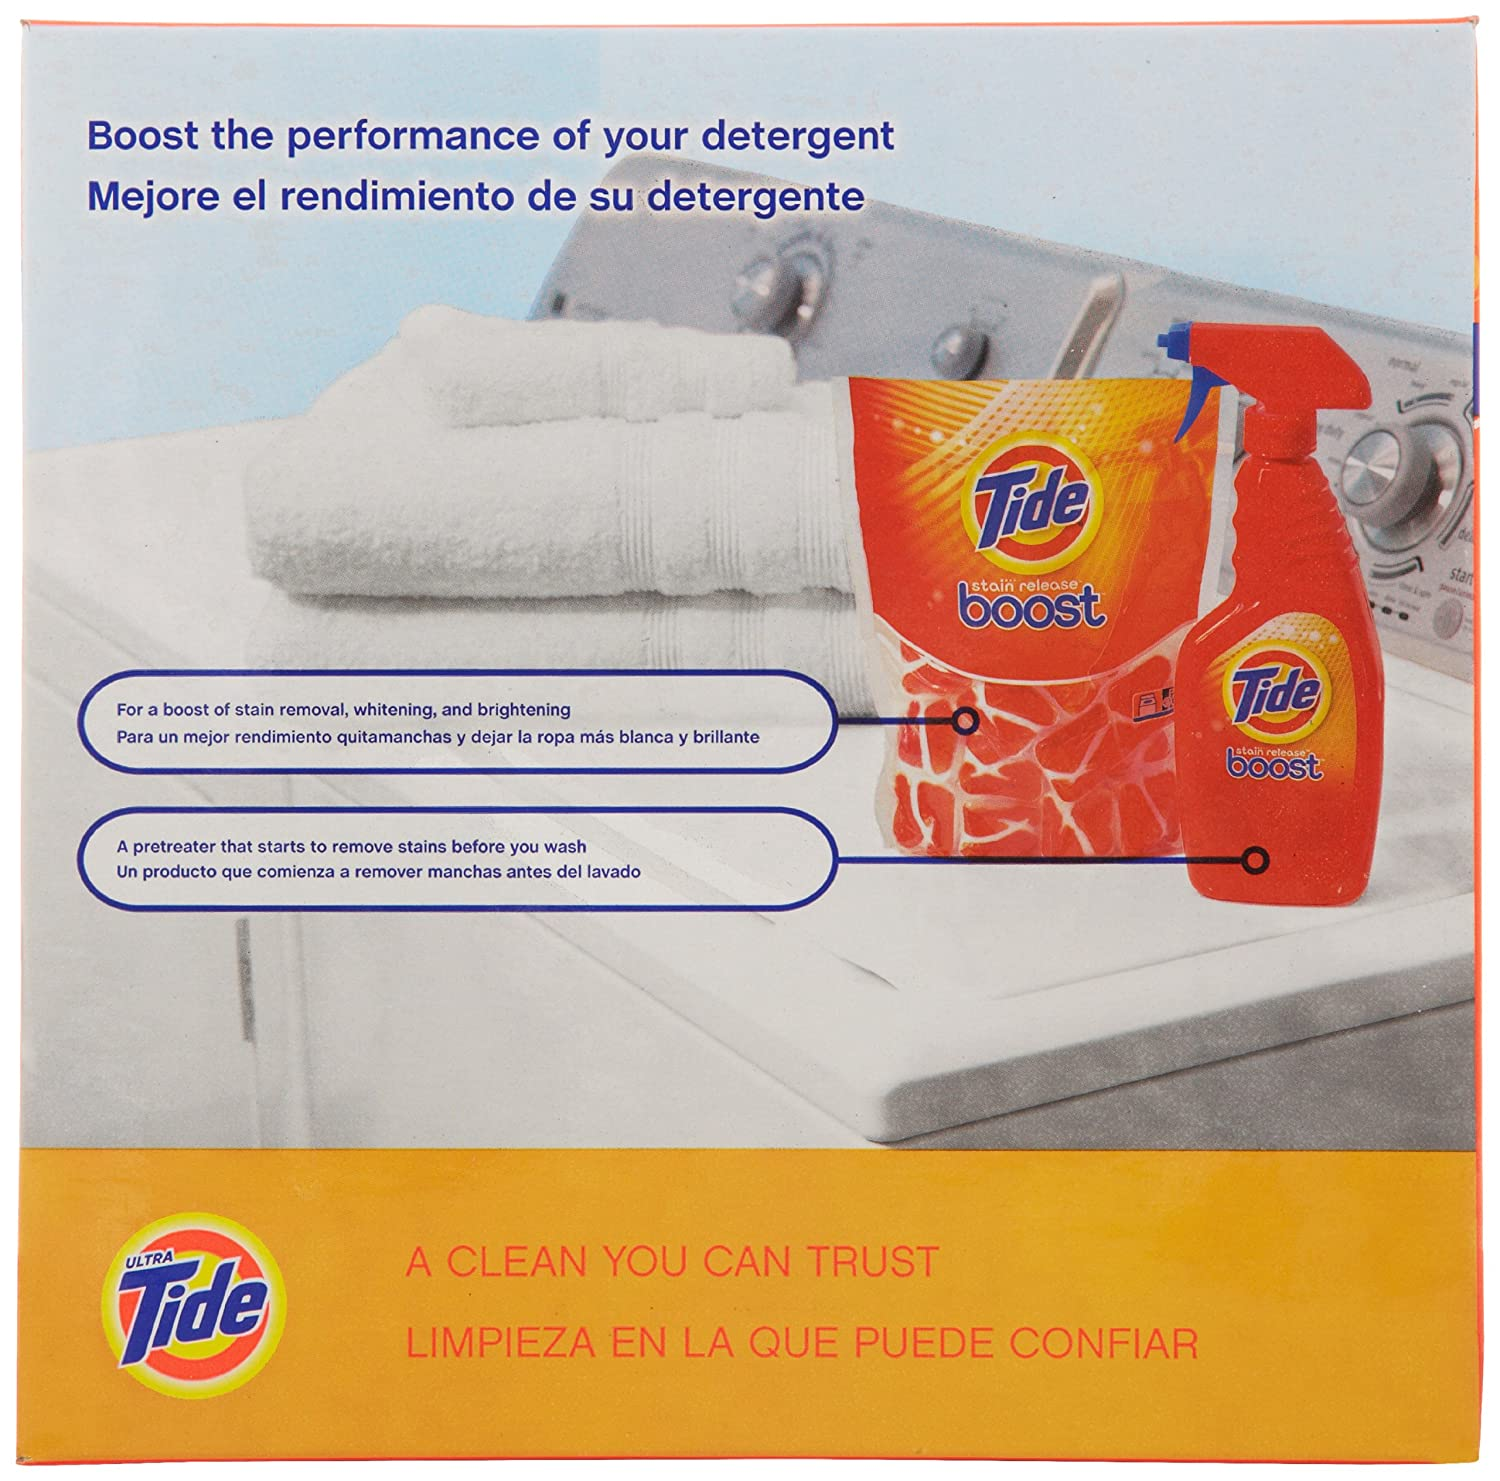 Amazon.com: Tide Ultra Original Scent Powder Laundry Detergent, 68 Loads, 95 Fl Oz: Health & Personal Care